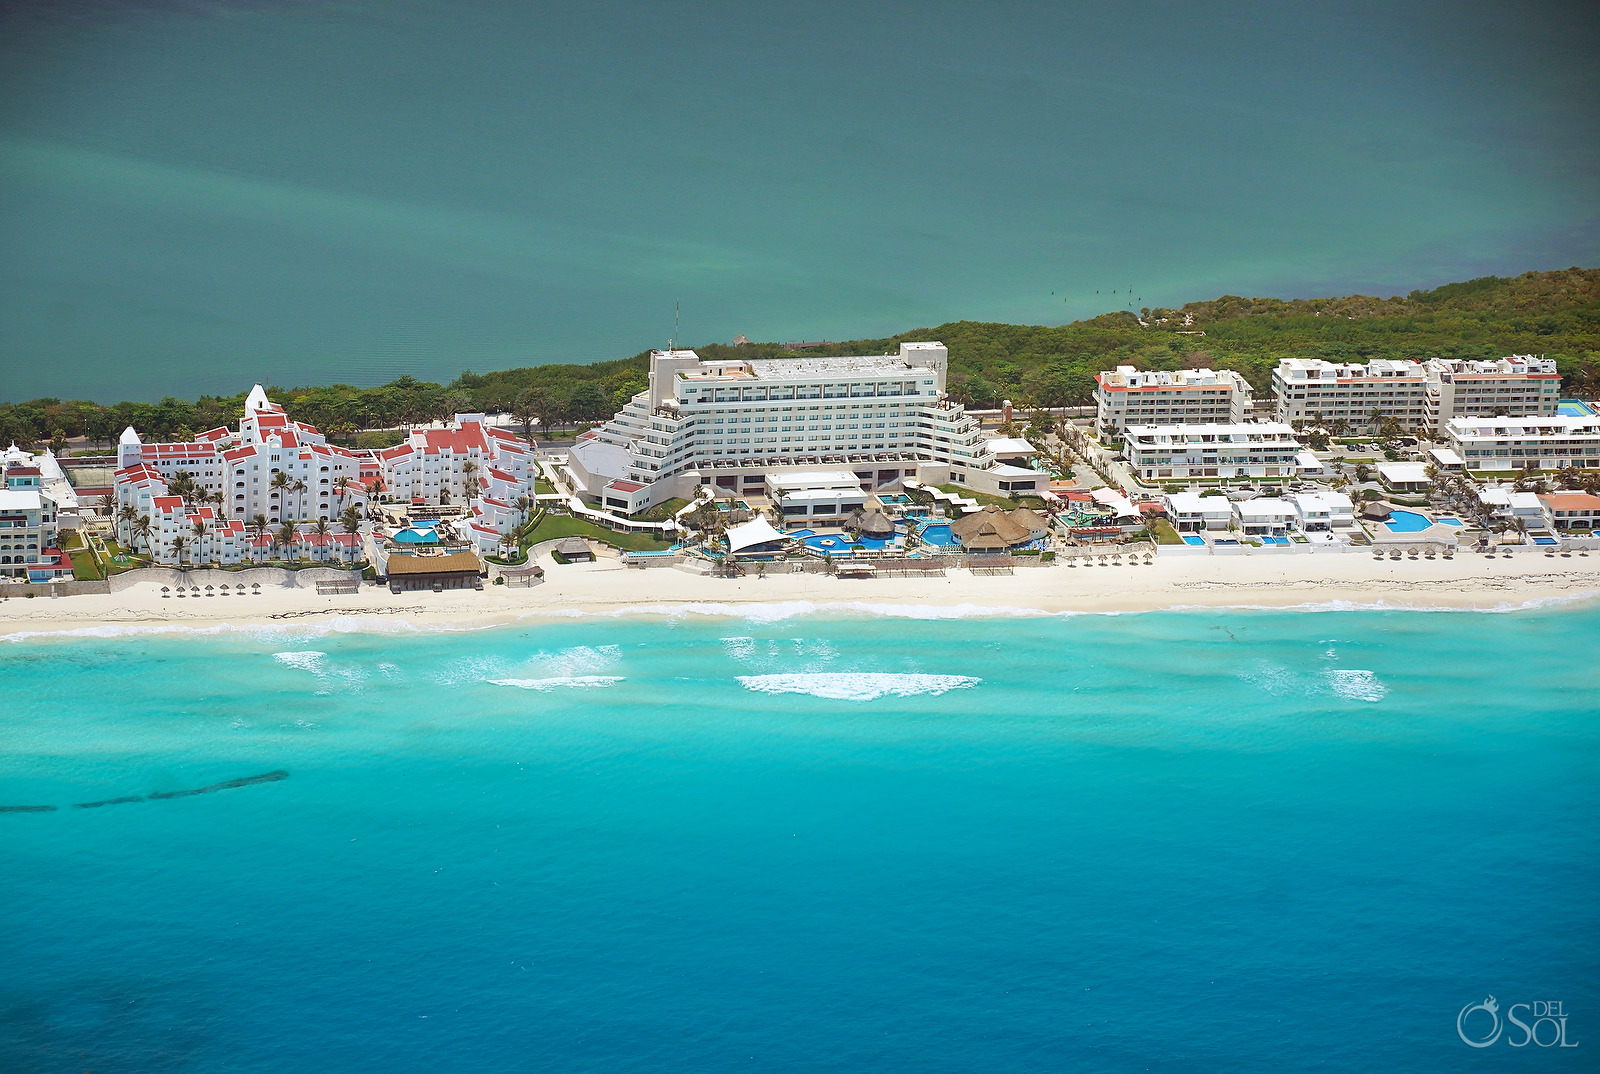 Hotels in Cancun during covid 19